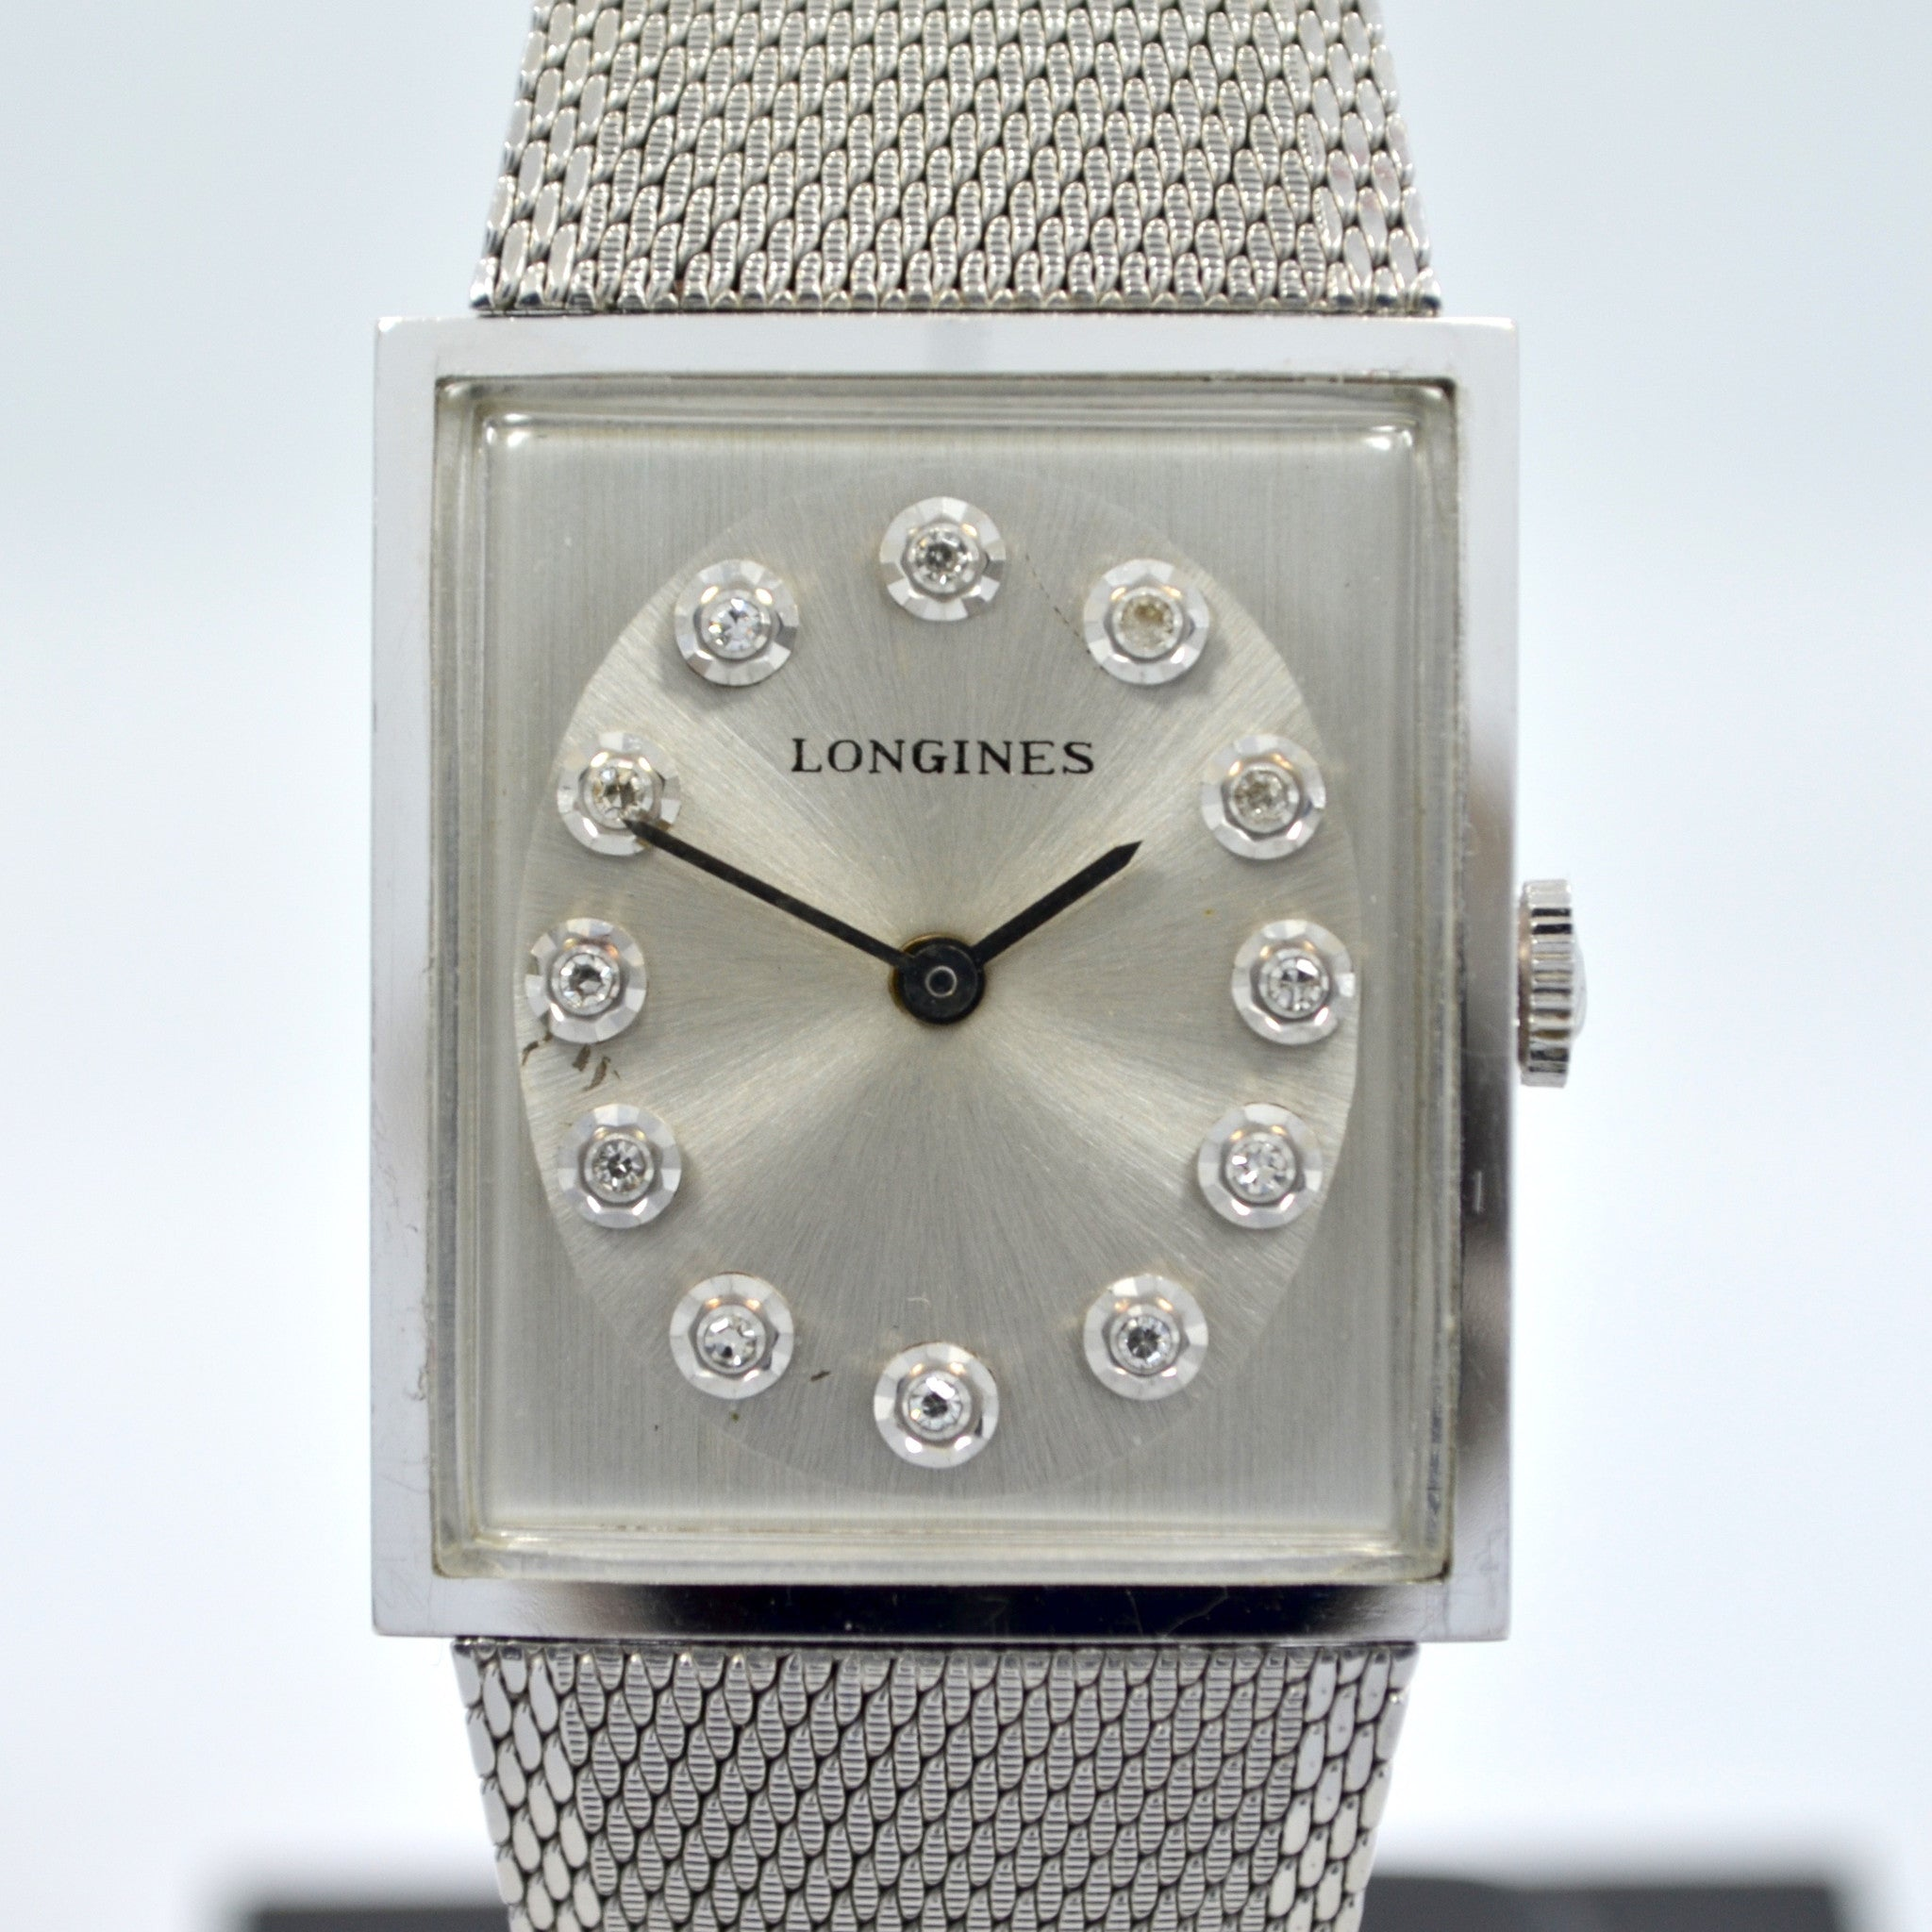 Vintage Longines 14K White Gold Diamond Stainless Steel Cal. L 847.4 Wristwatch - Hashtag Watch Company